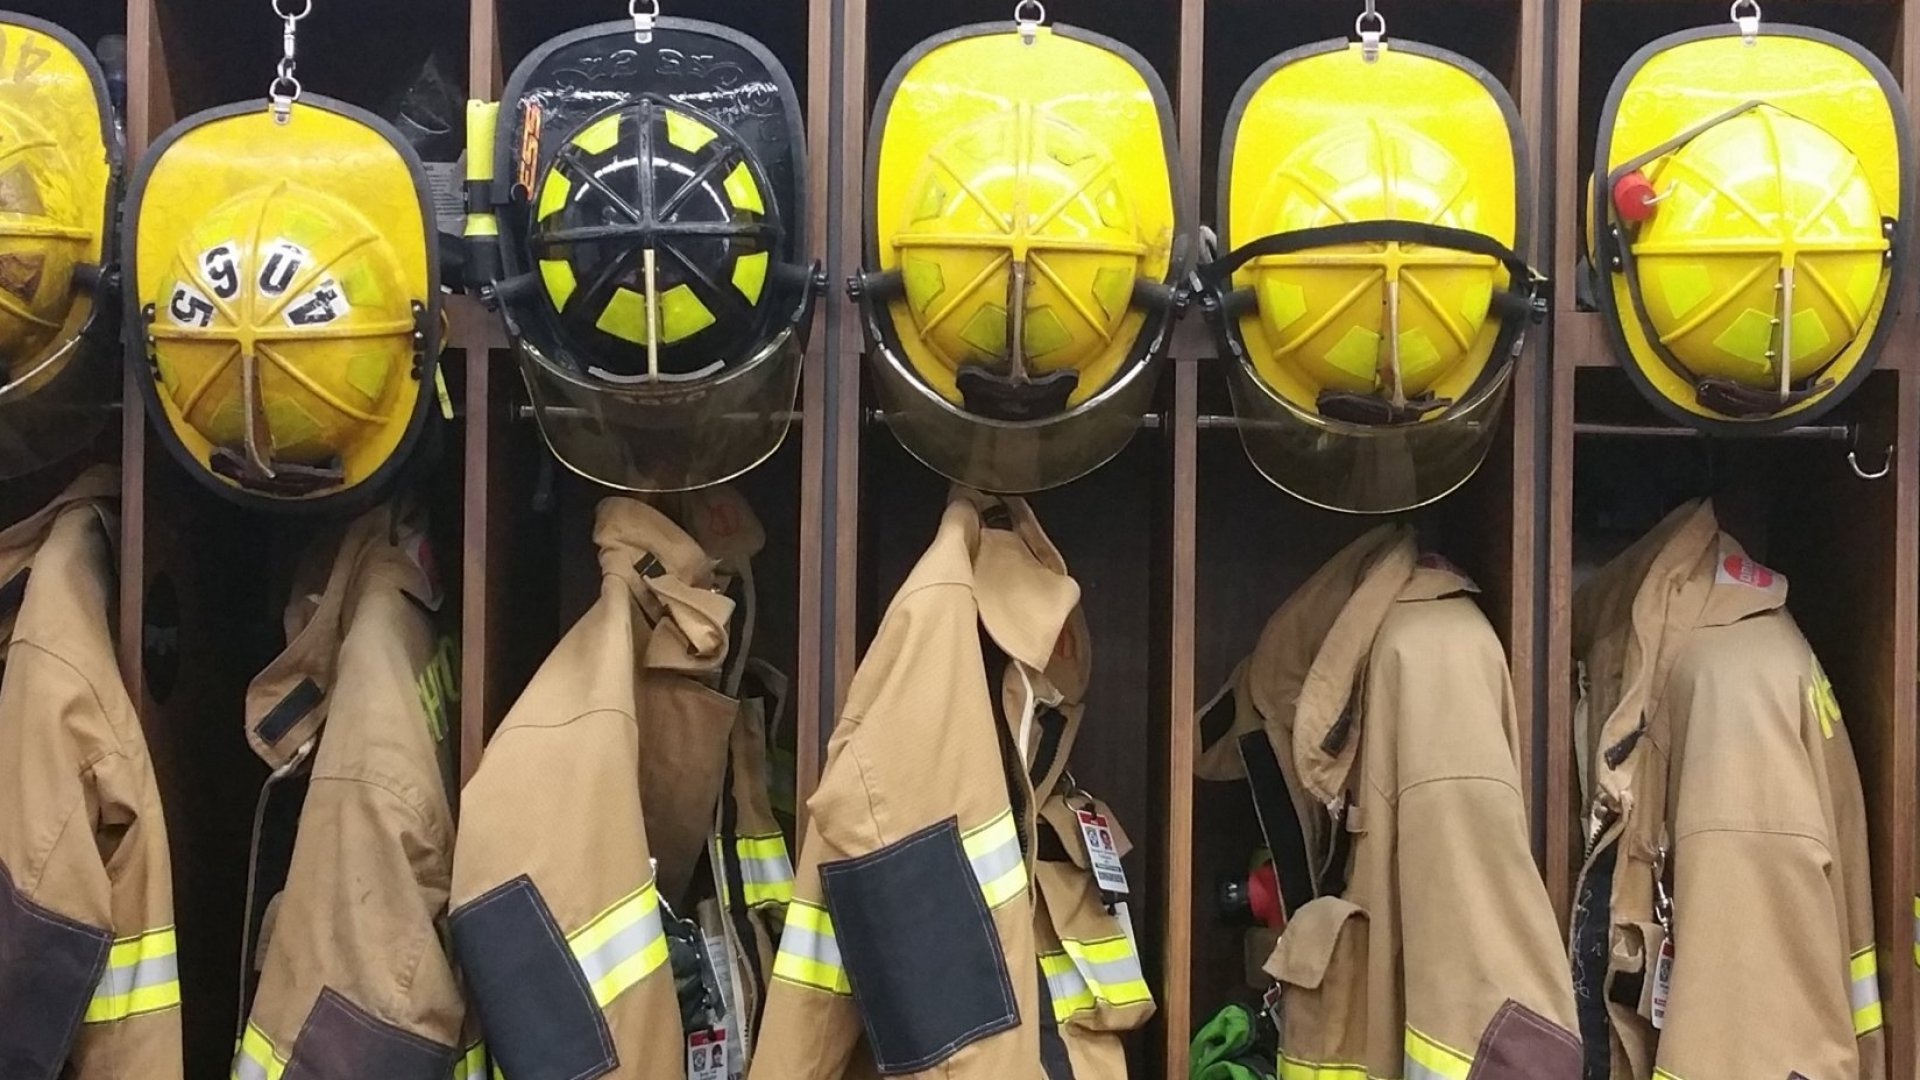 How 5G Could Help First Responders Save More Lives